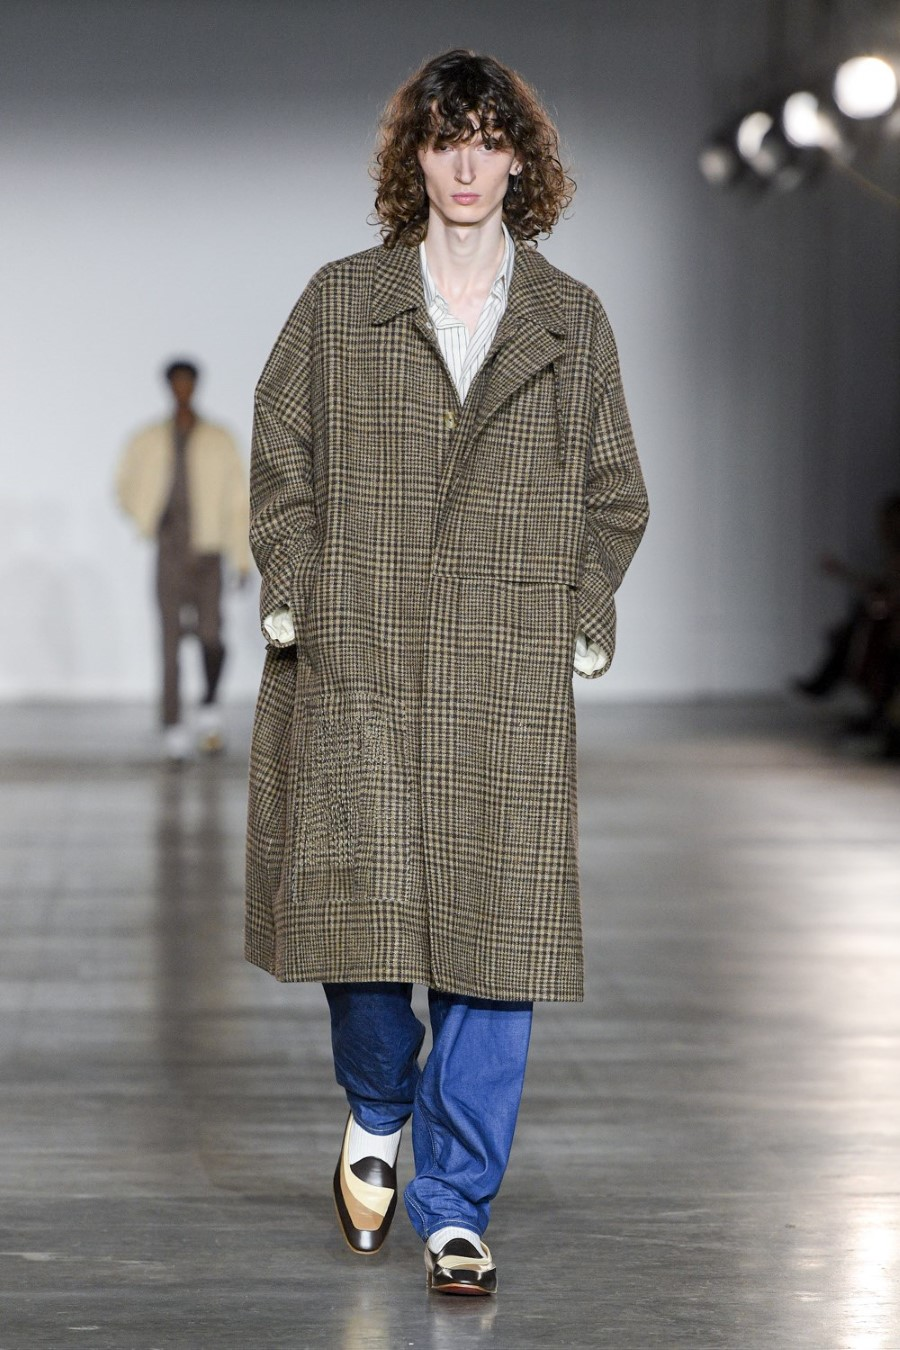 E. Tautz Fall Winter 2020 - London Fashion Week Men's